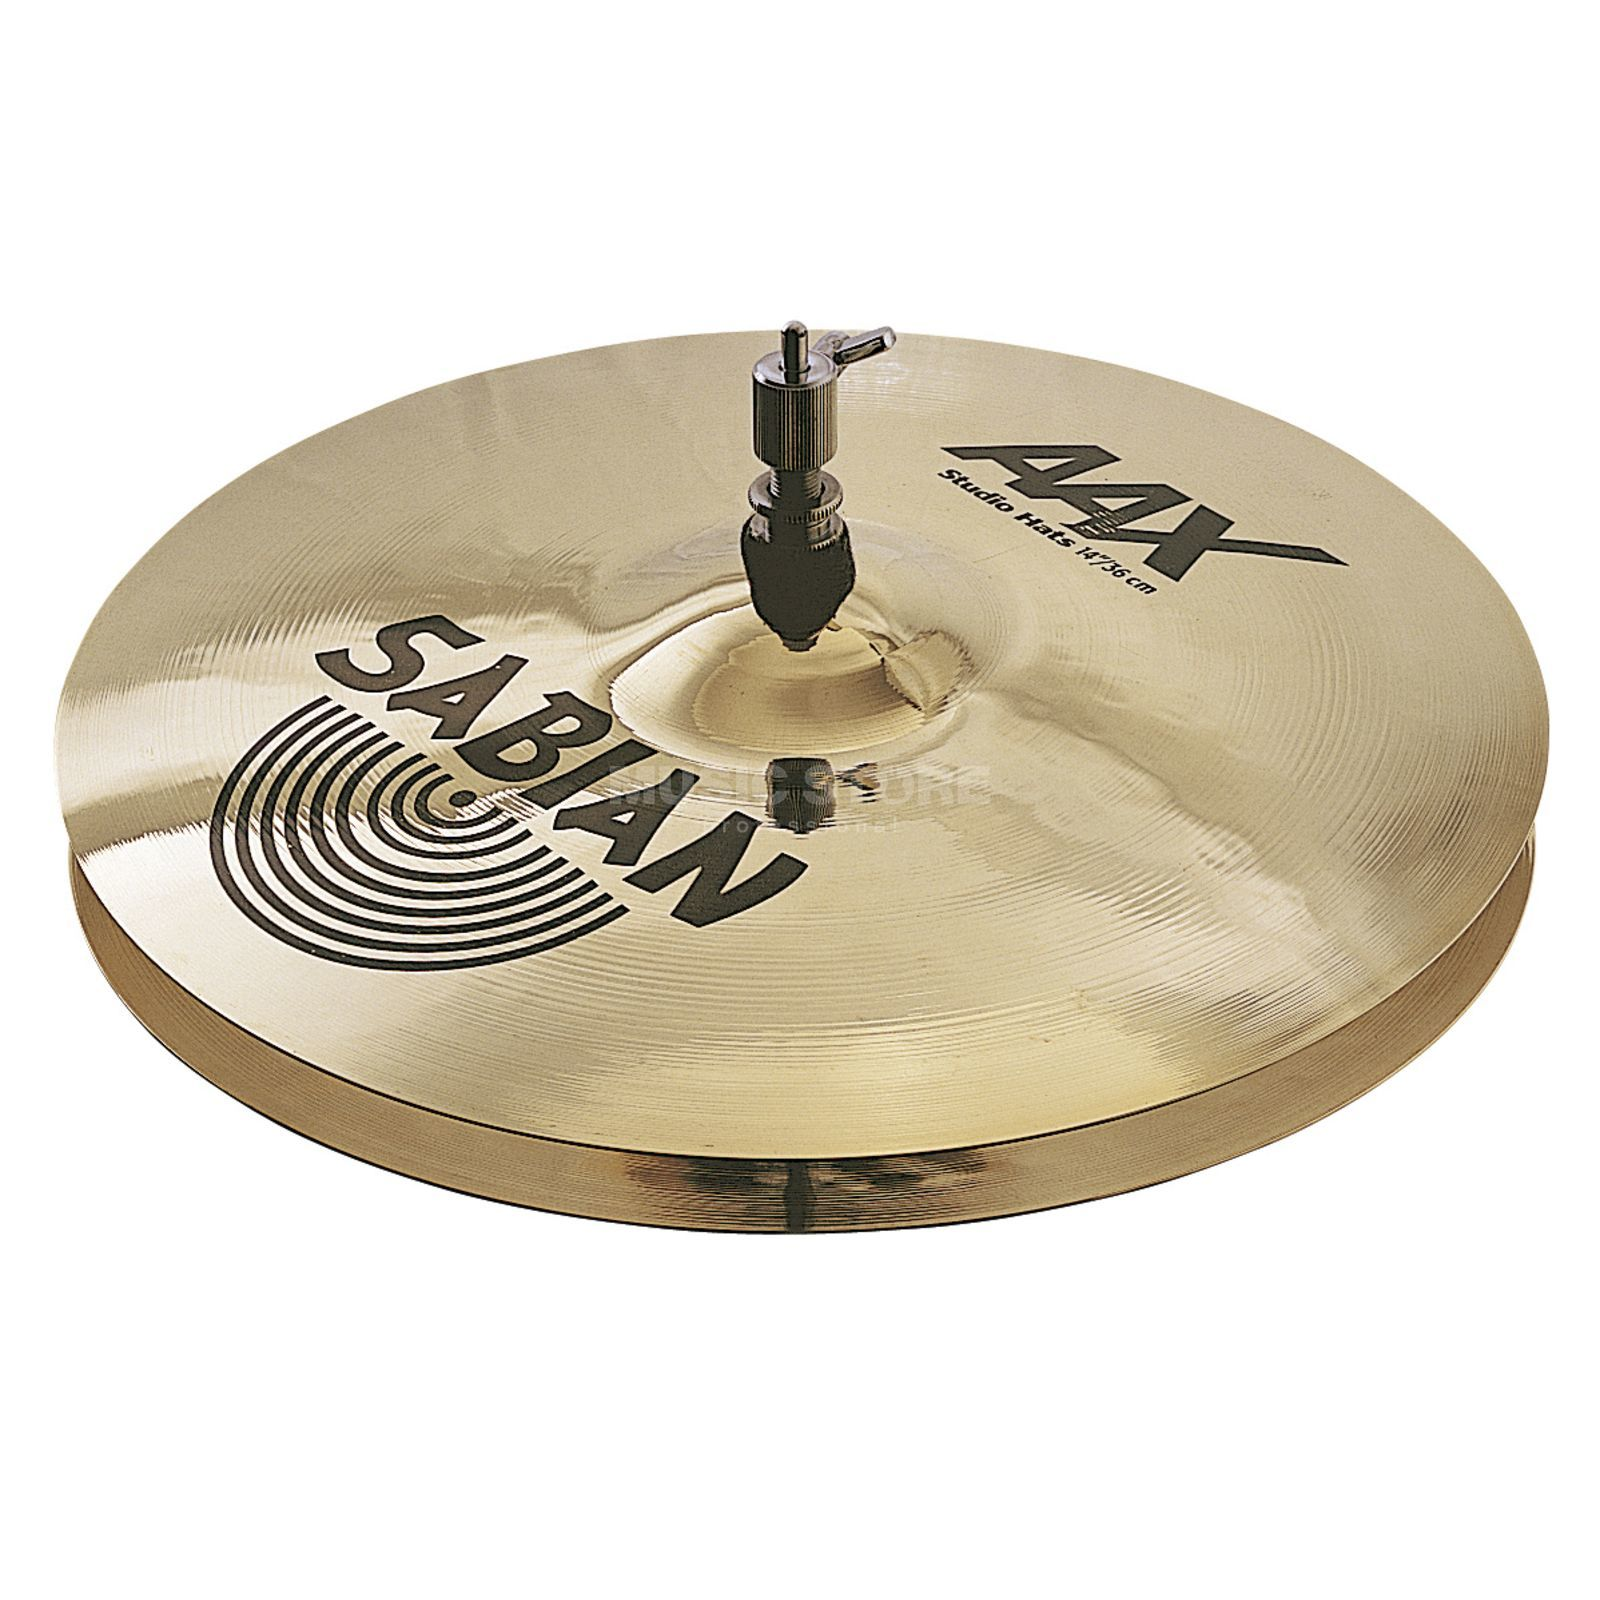 "Sabian AAX Studio HiHat 14"" Brilliant Finish Produktbild"